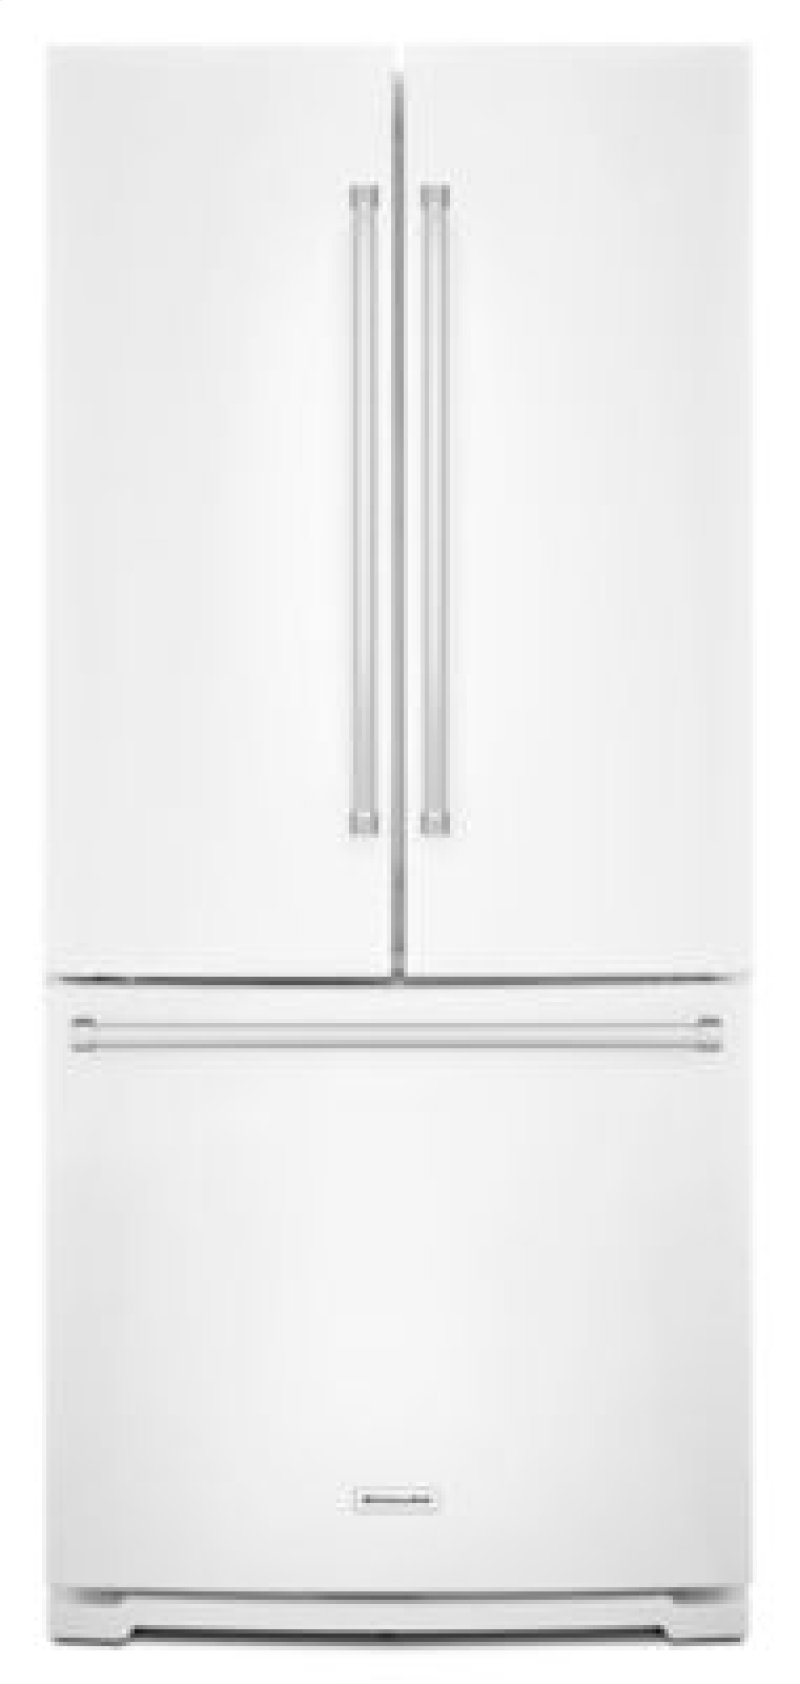 Krff300ewh in white by kitchenaid in dover nh 20 cu ft for French door width